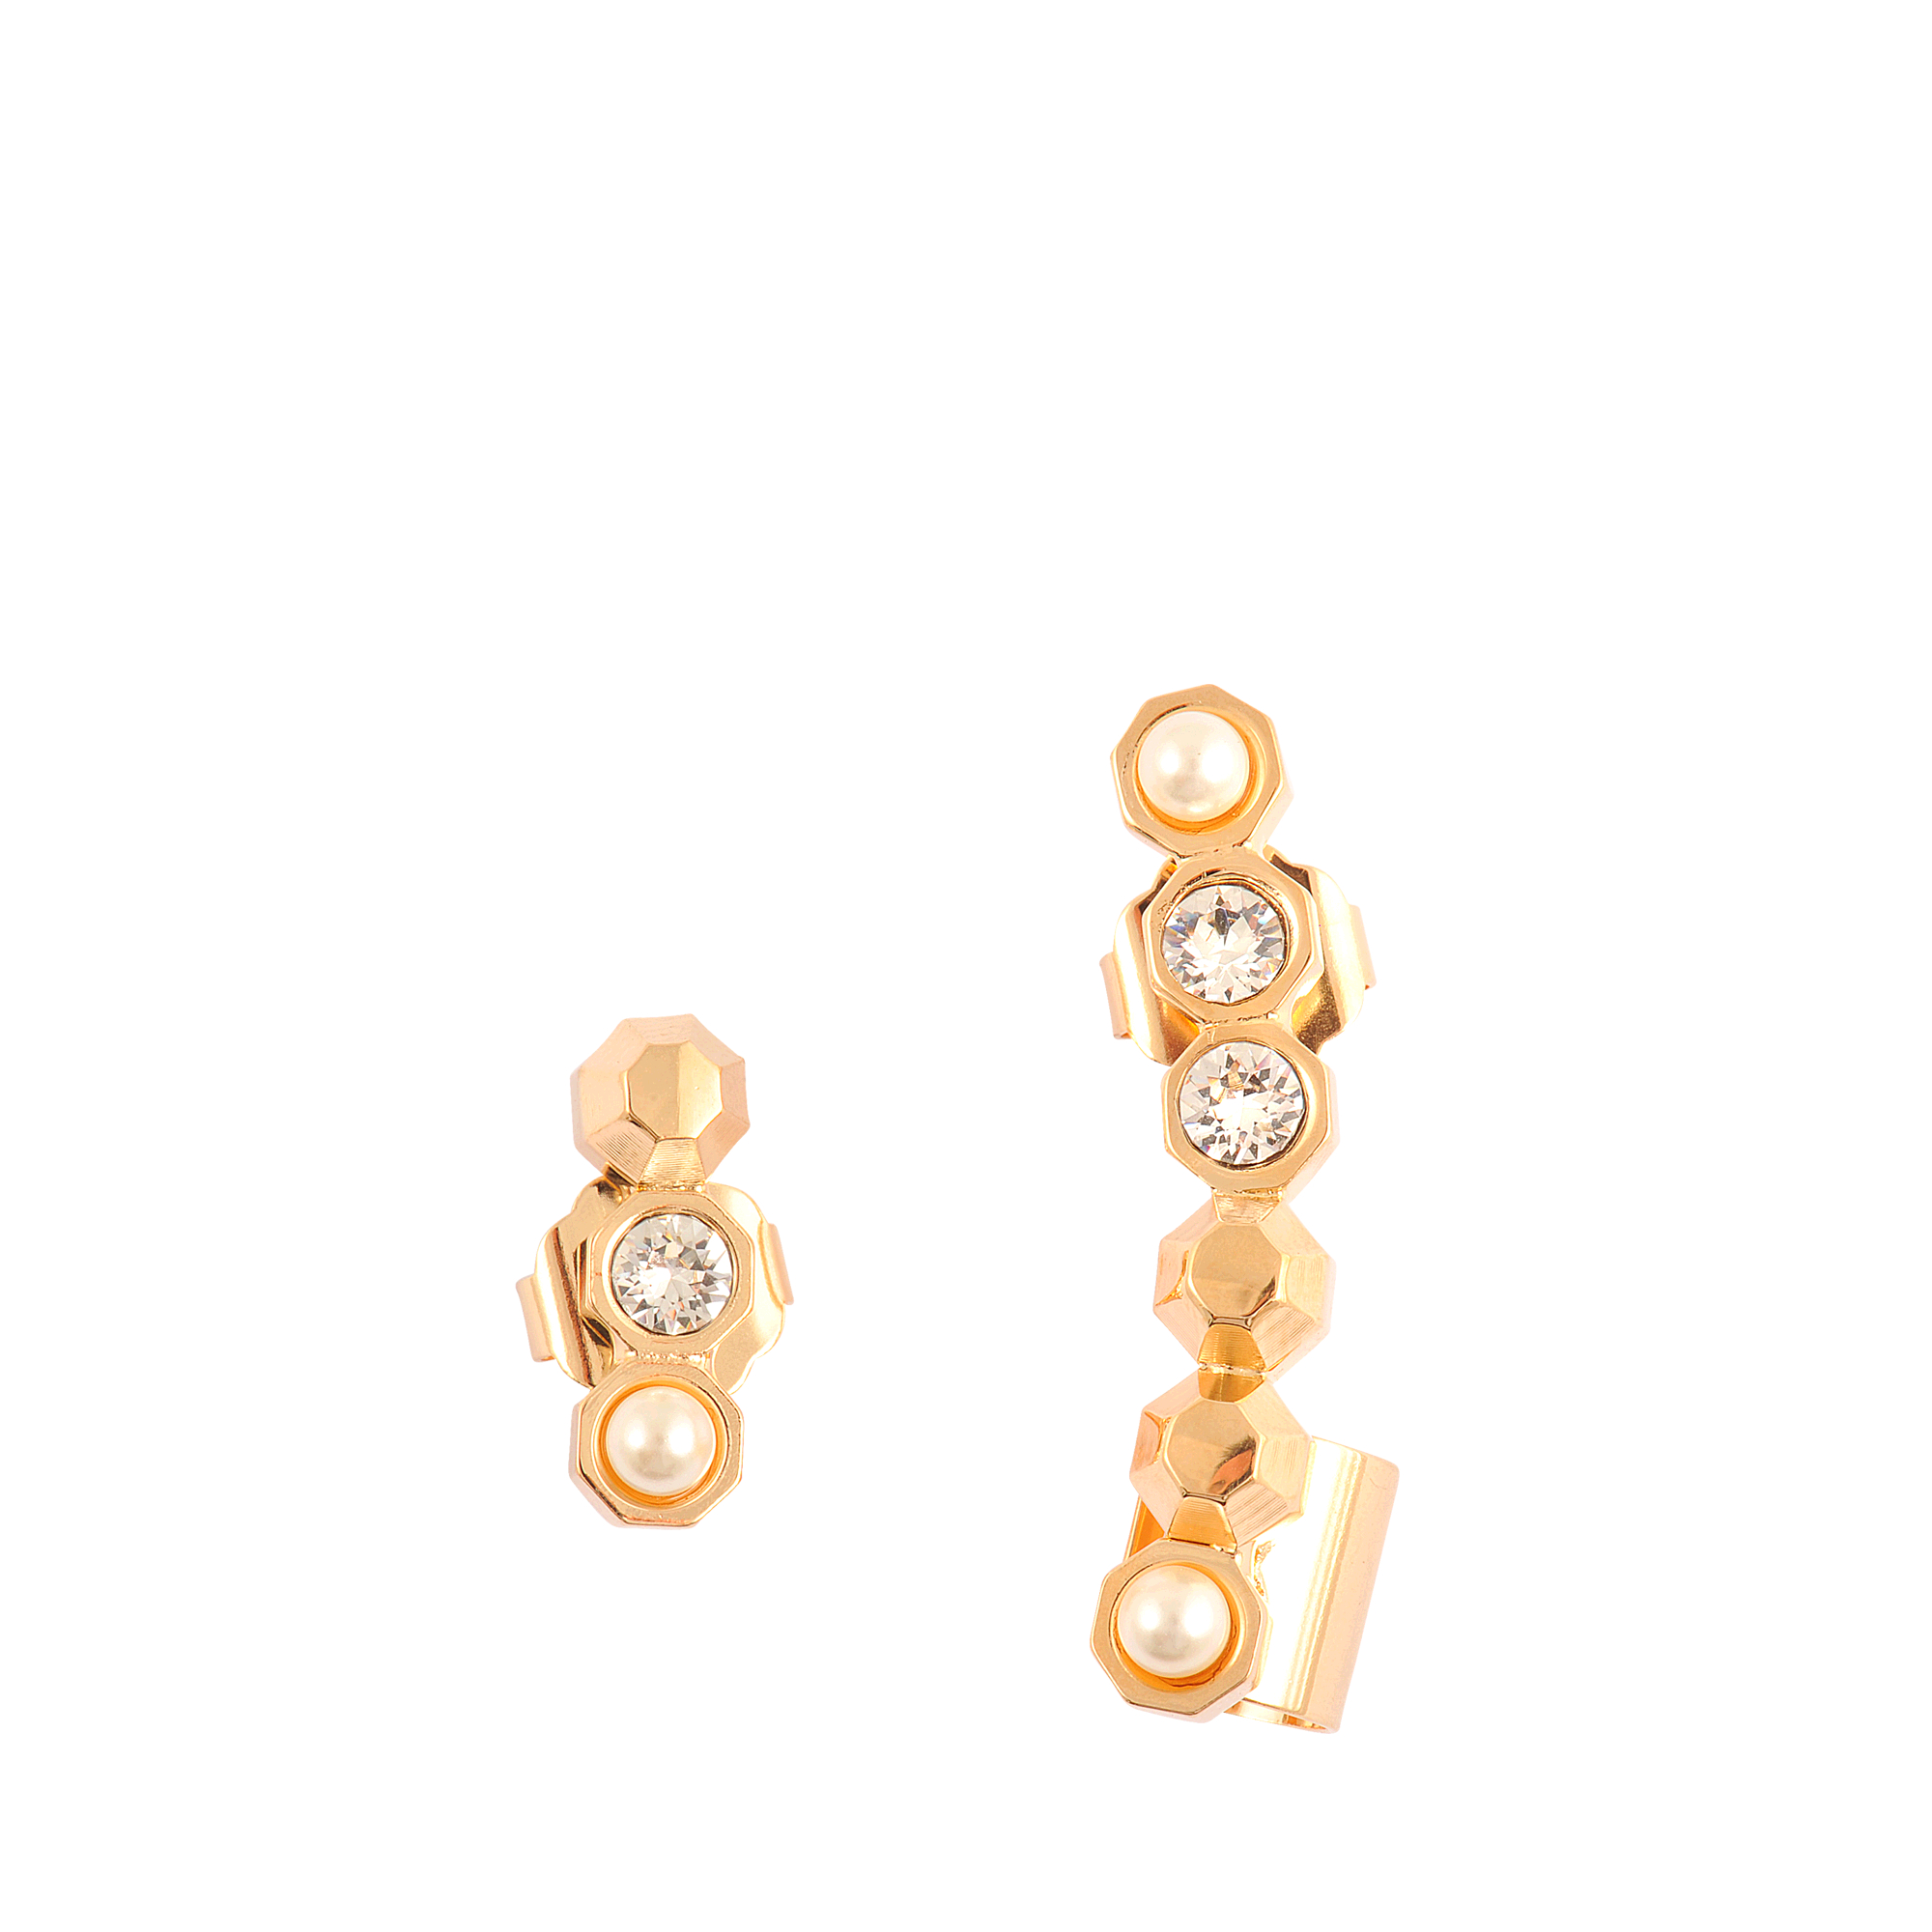 pin asymmetric orders sequoia earrings buy the standard at bonas oliver worldwide enjoy for delivery free